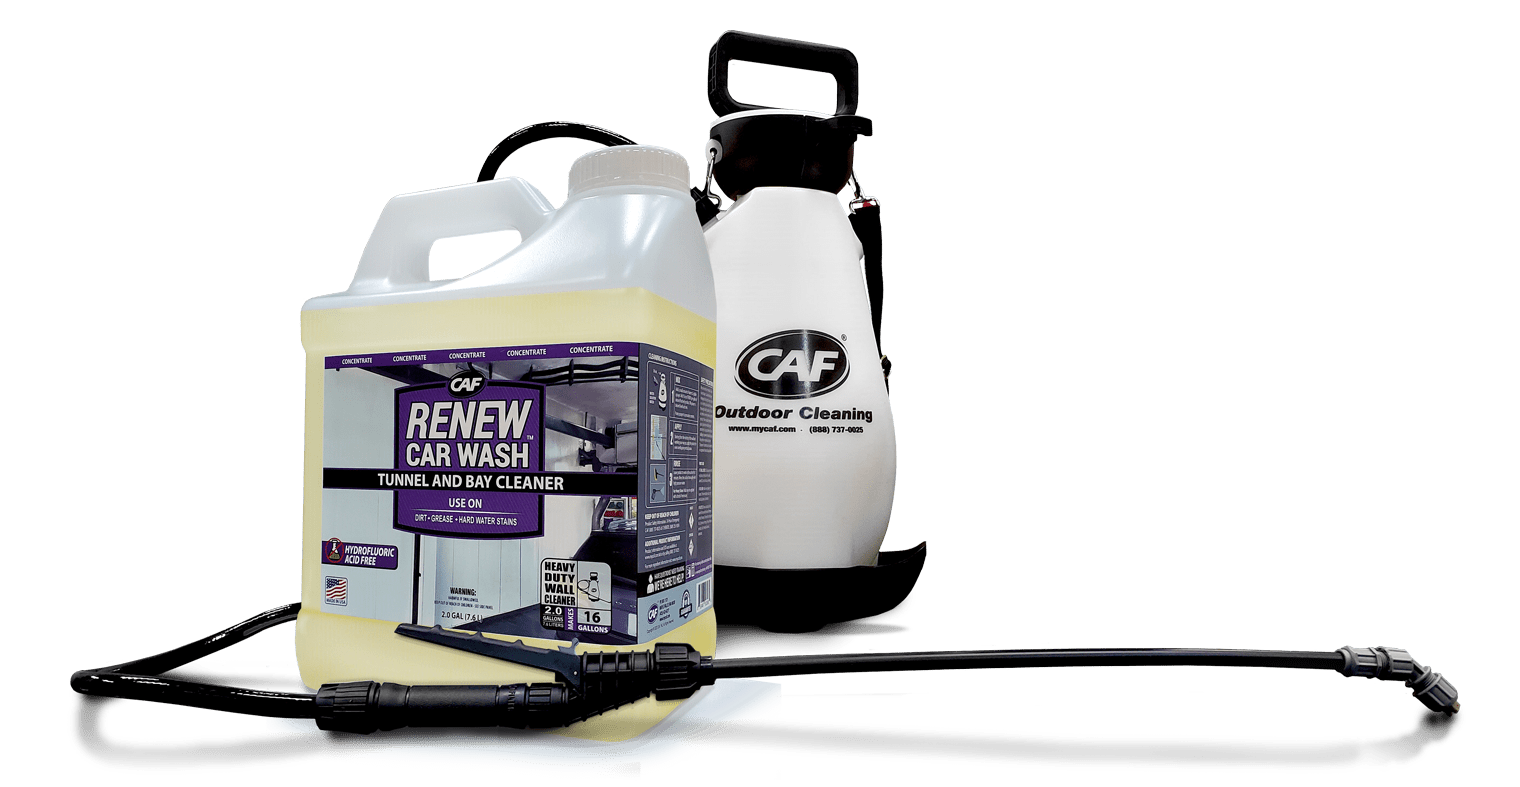 renew car wash cleaner and sprayer applicator